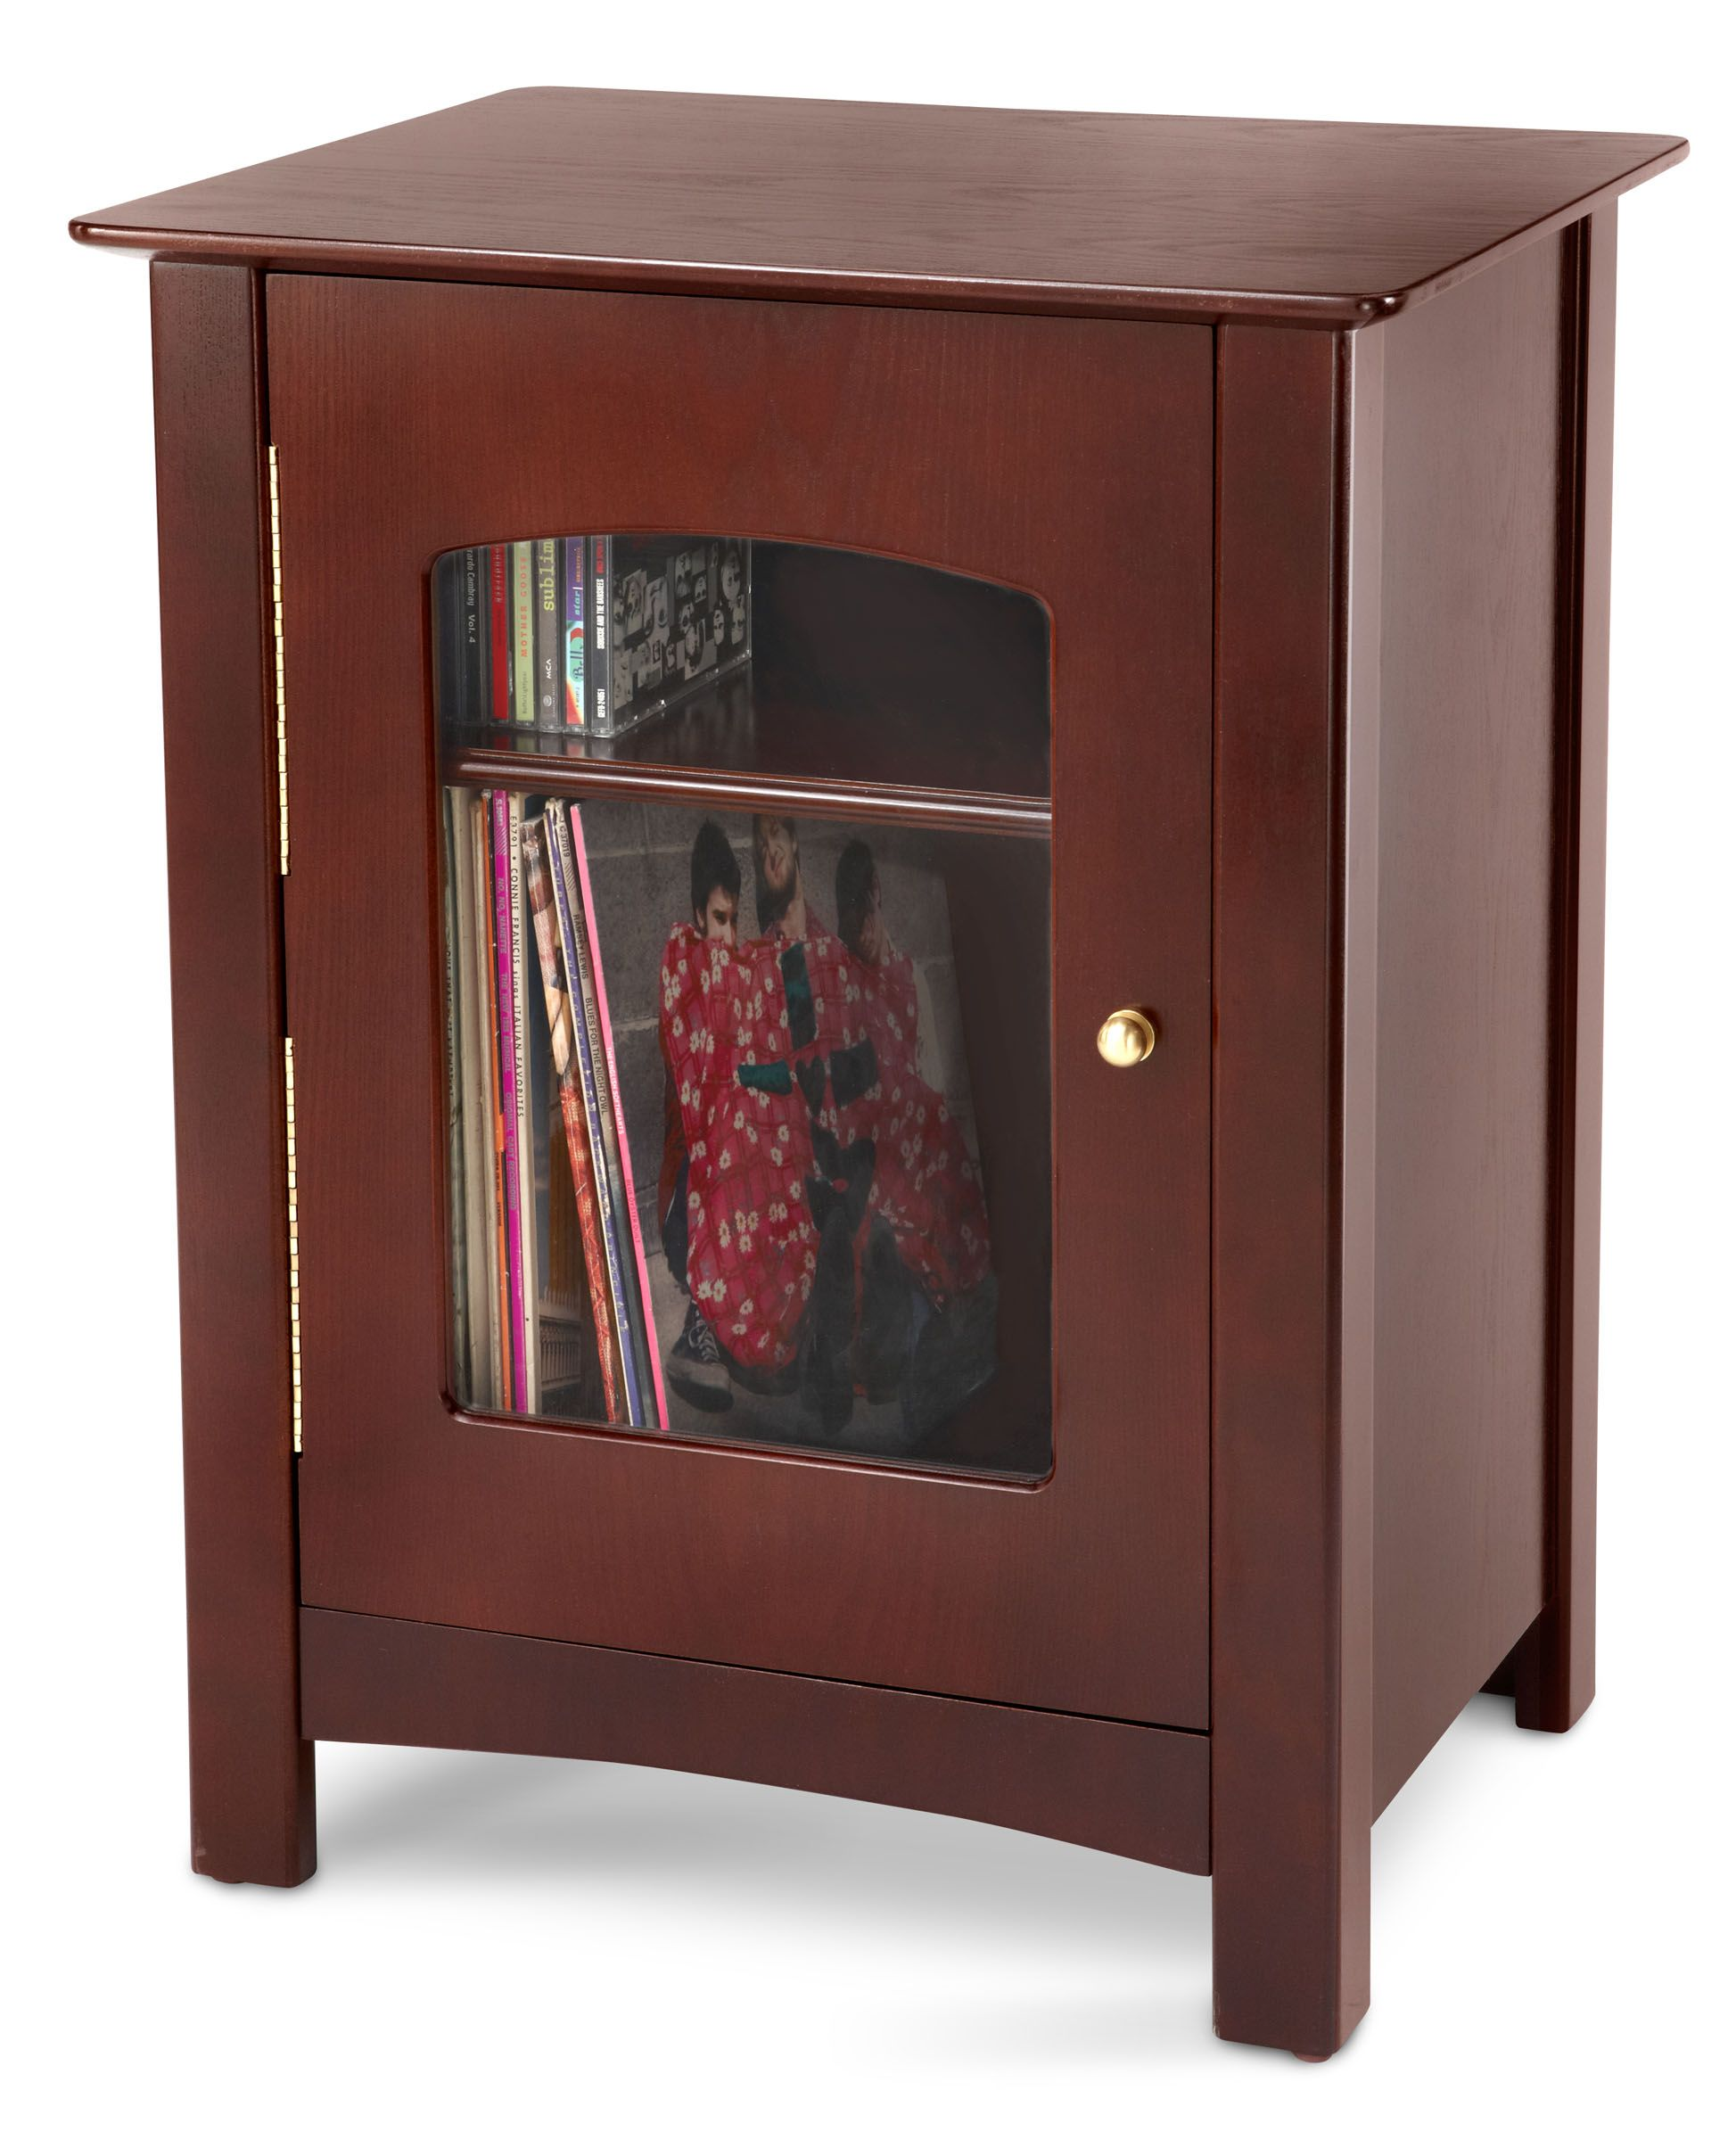 Crosley Bardstown Stand Cherry Crosley Turntablestand Recordstand Furniture Vintage Office Furniture Home Entertainment Furniture Office Furniture Set